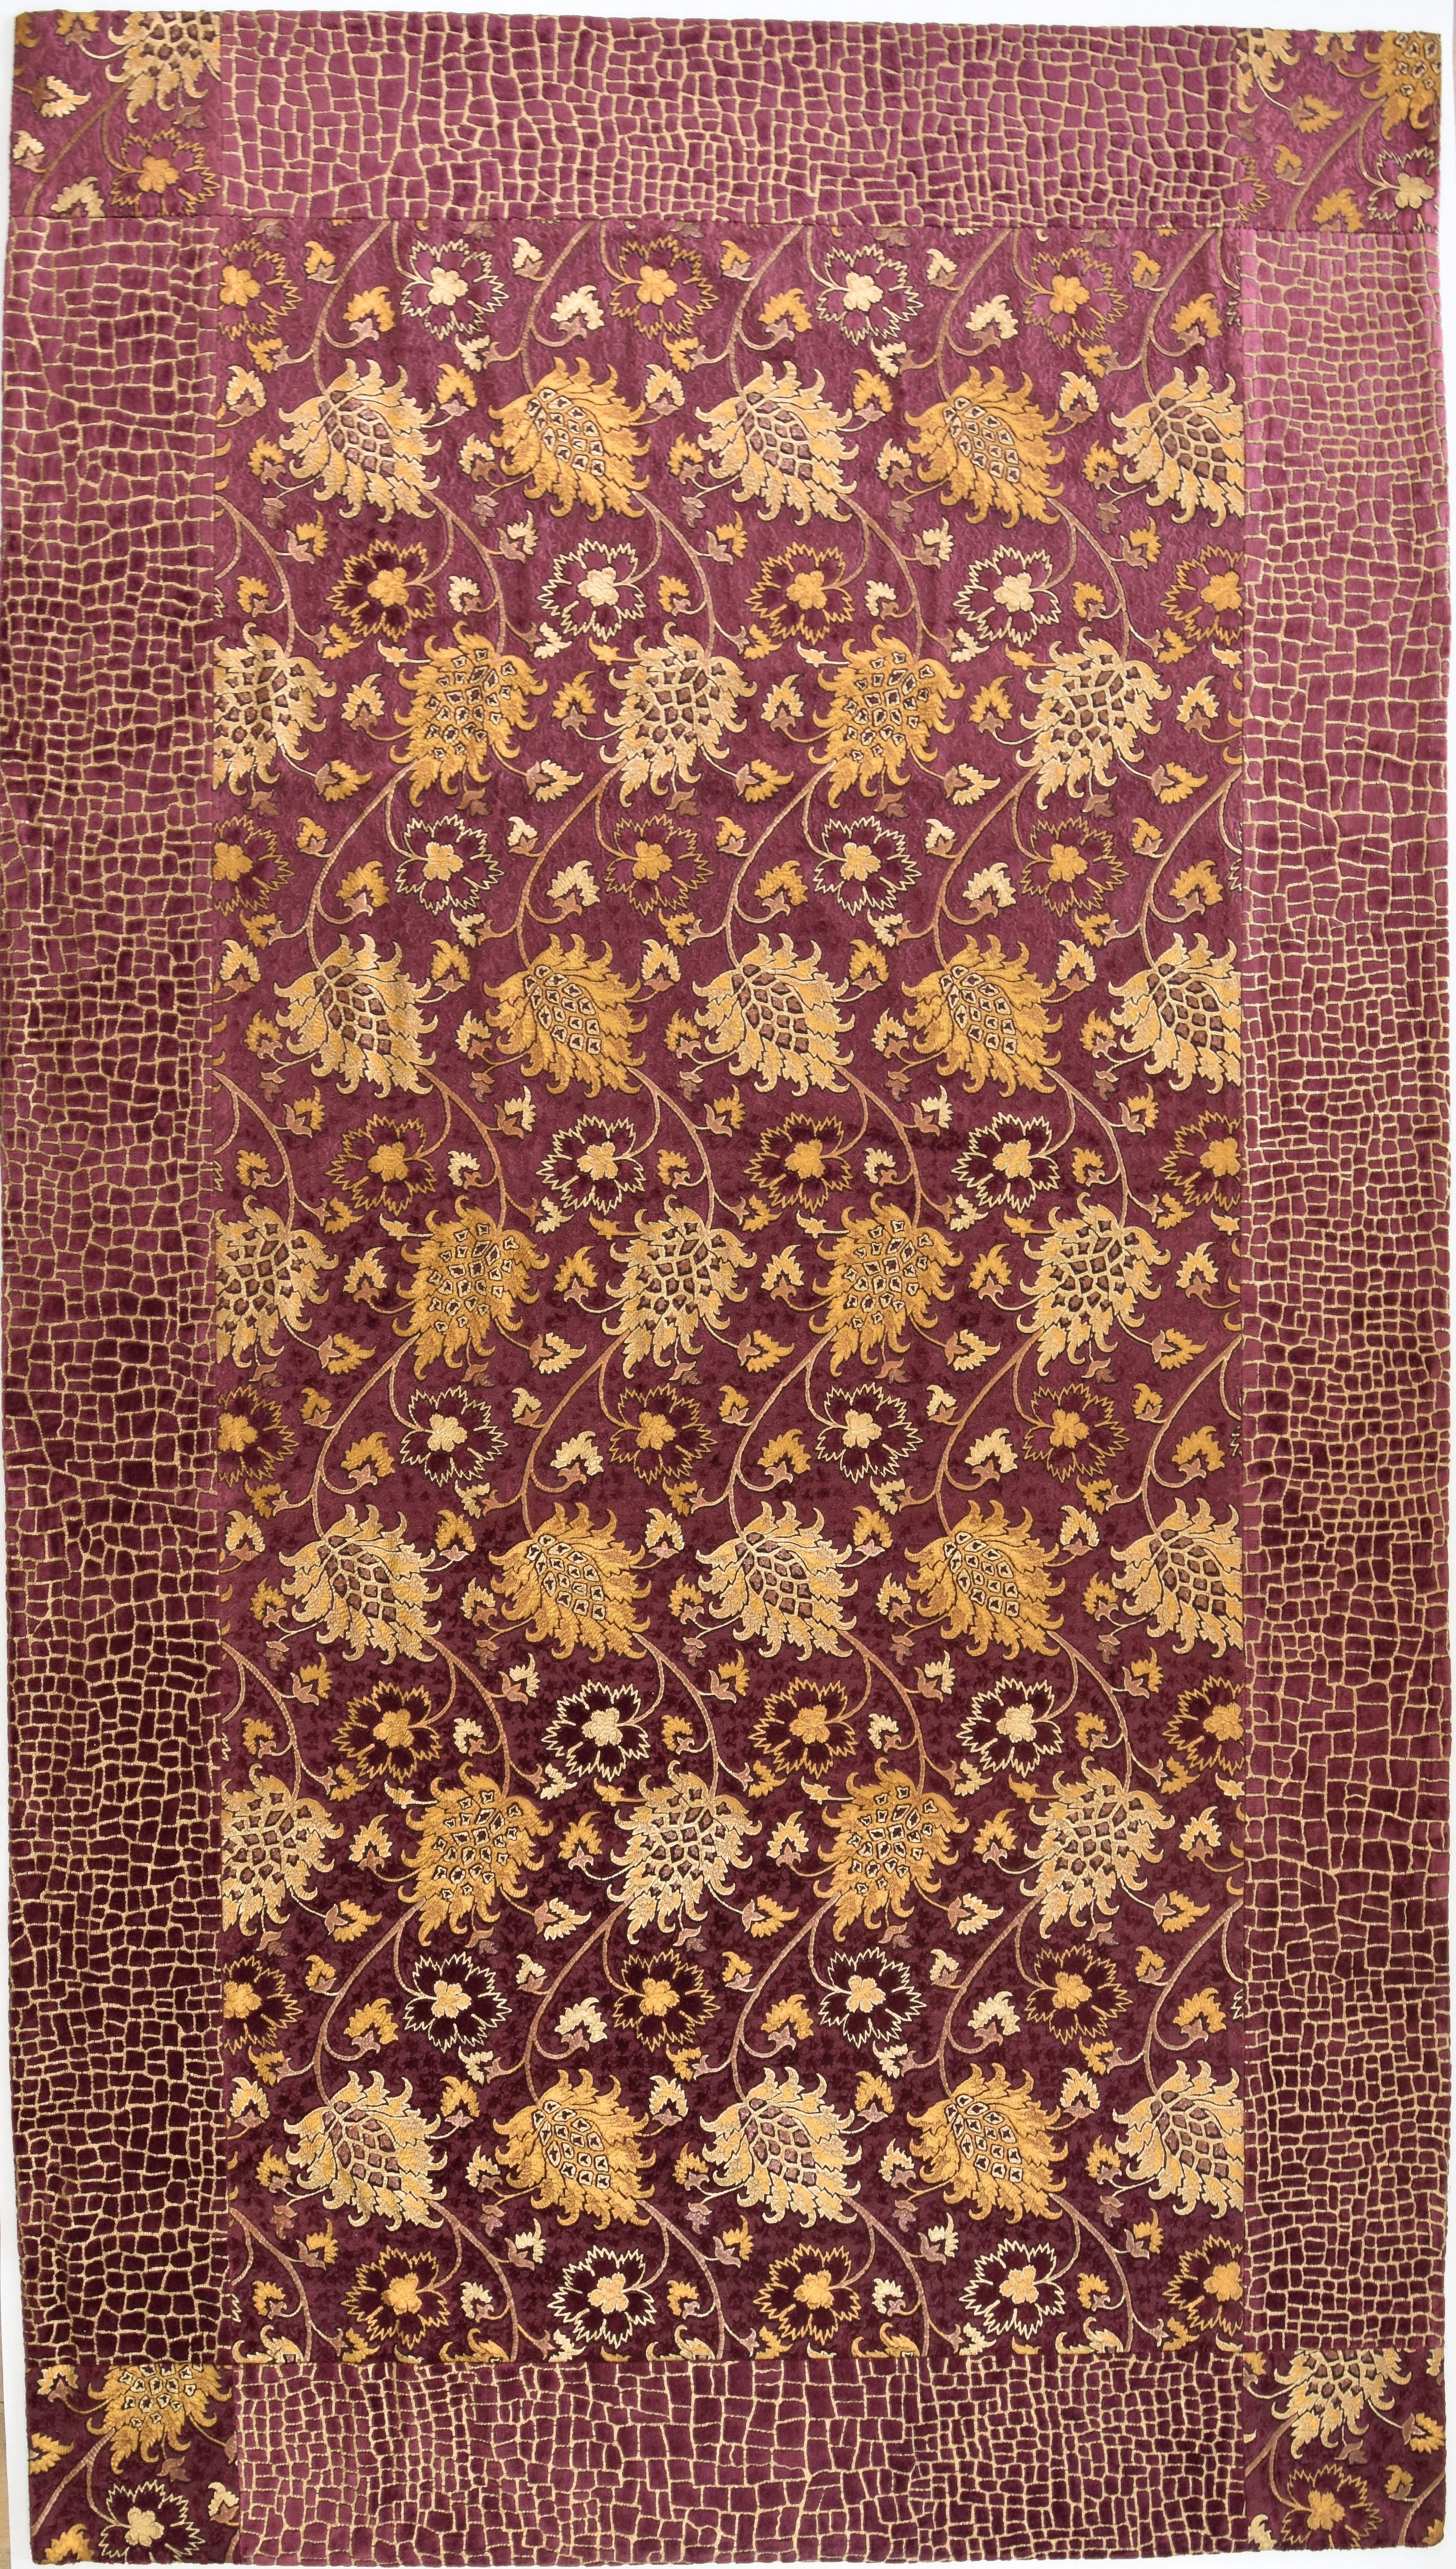 Maroon and Gold floral wall hanging - from Venetia Studium - Exquisiti